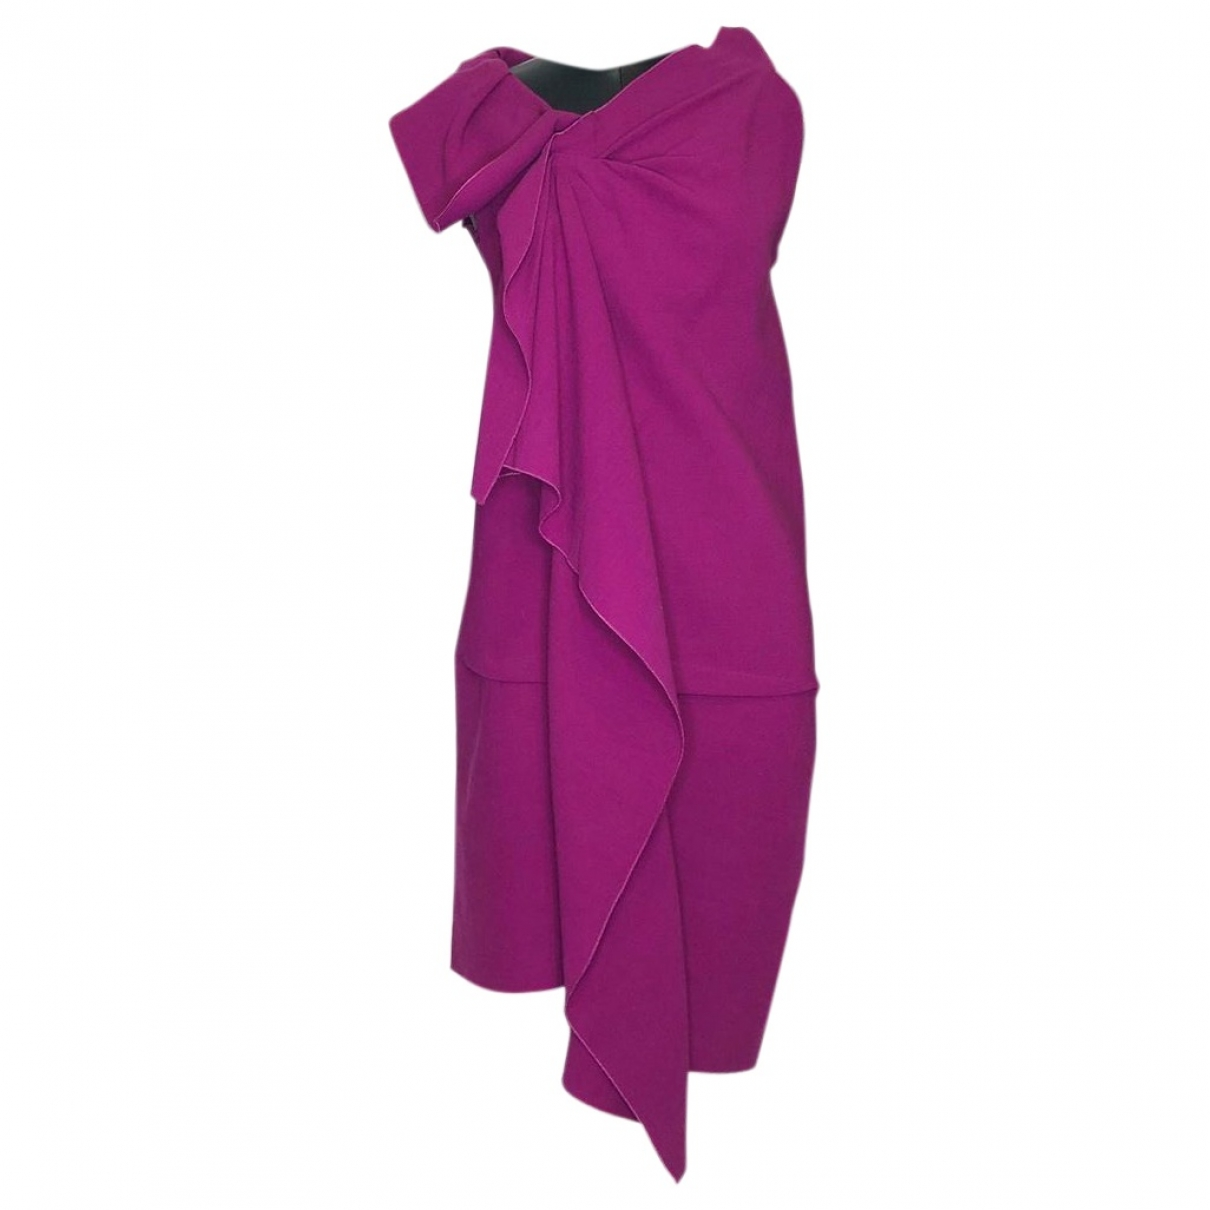 Roland Mouret \N Kleid in  Rosa Wolle